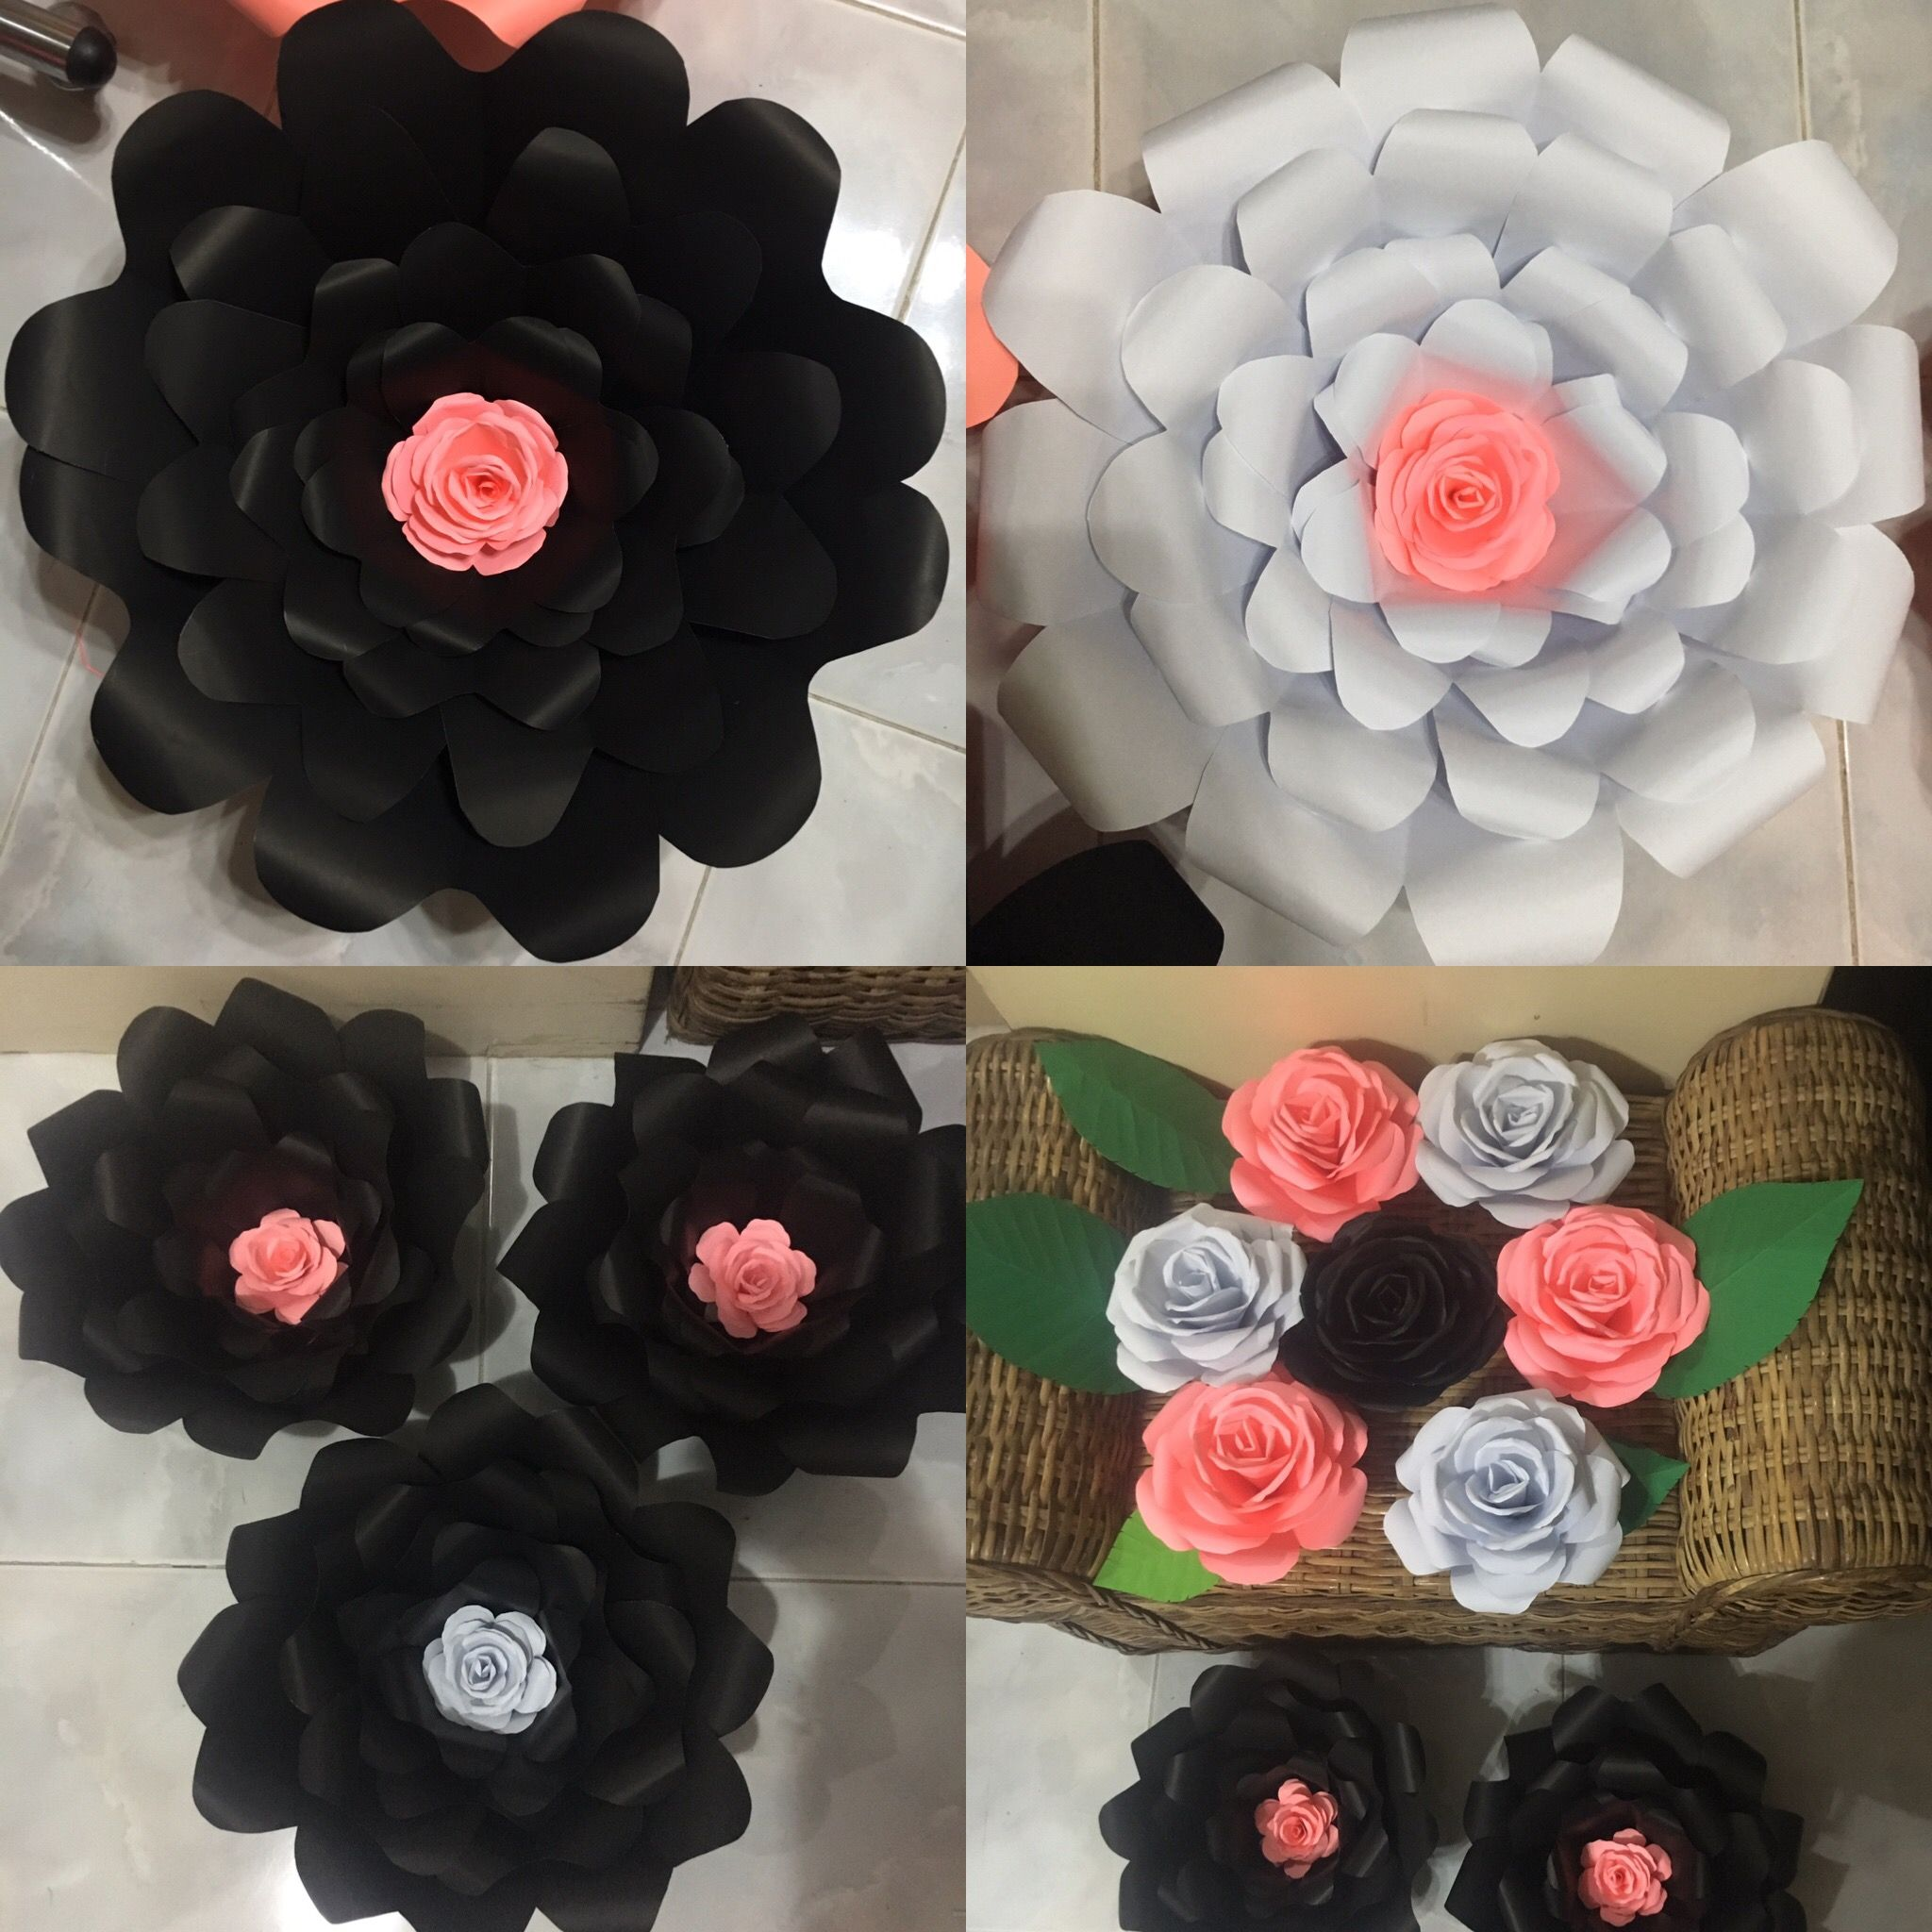 Black and white and coral paper flower by gelle diy hand made paper black and white and coral paper flower by gelle diy hand made paper flower by gellediy nursepreneur sideline passion pm me for inquiries mightylinksfo